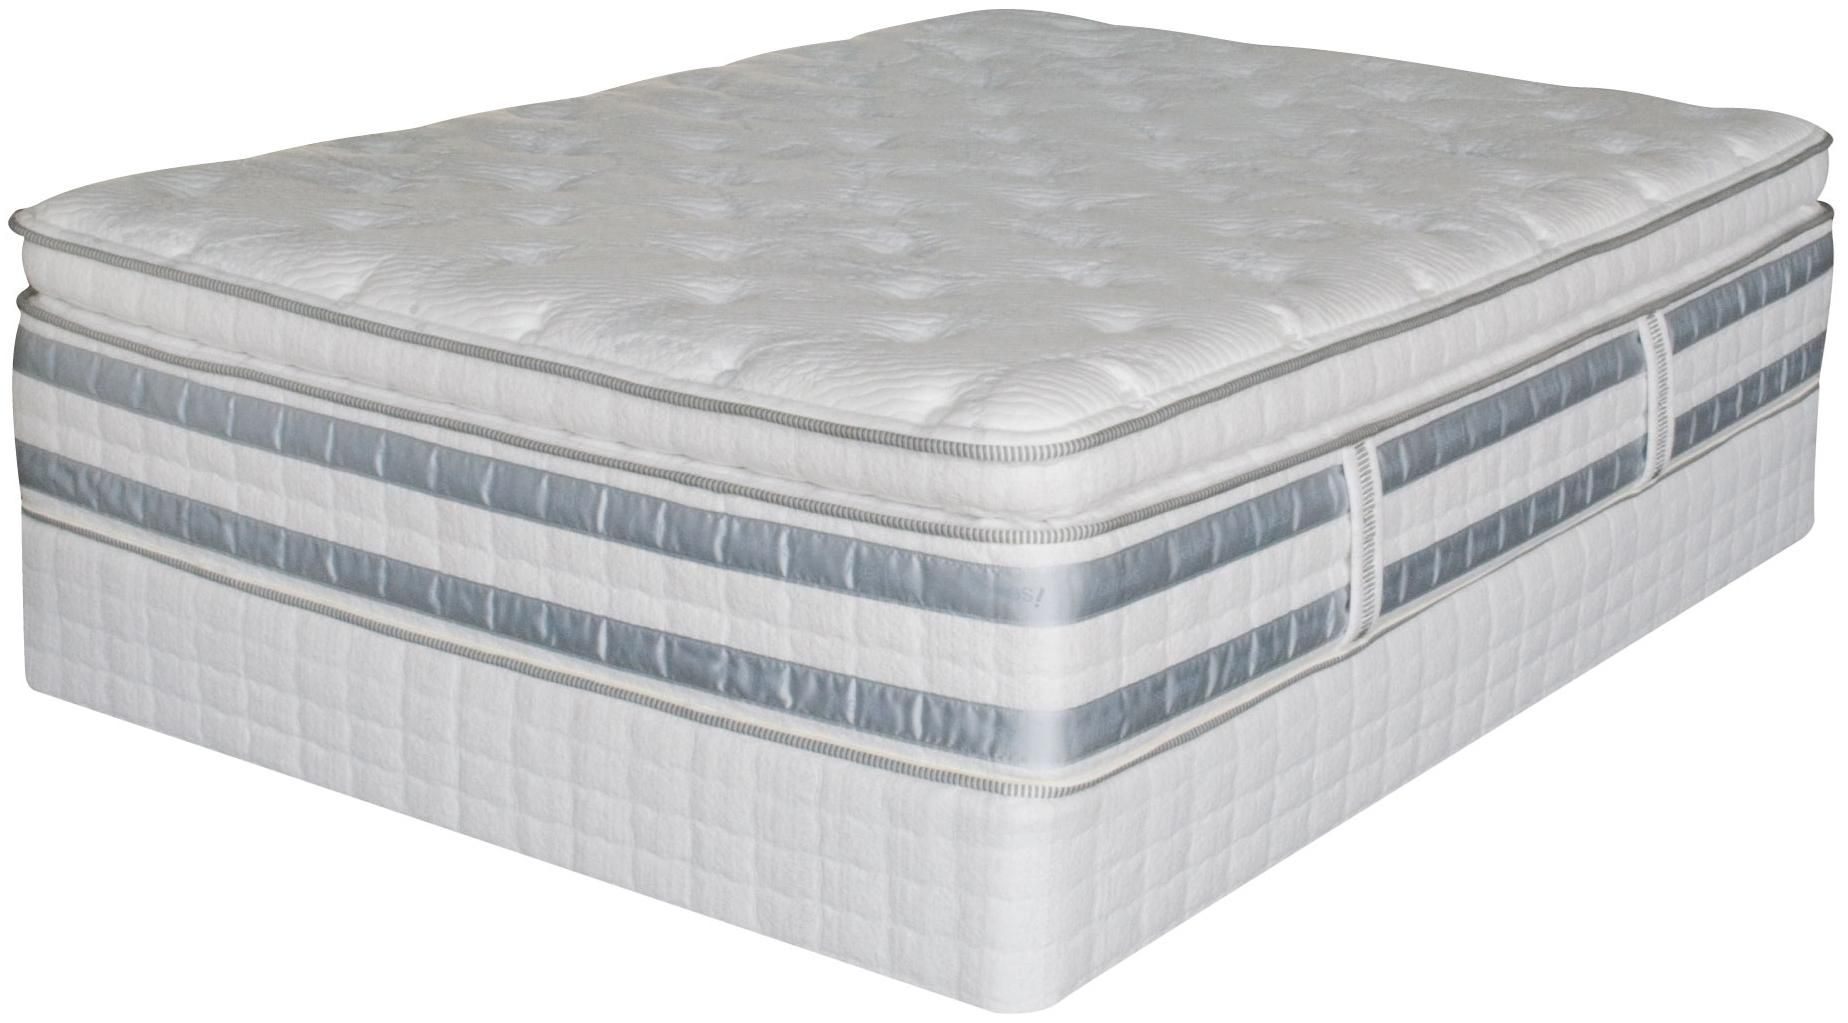 Perfect Day Iseries Ceremony Queen Super Pillow Top Mattress Set